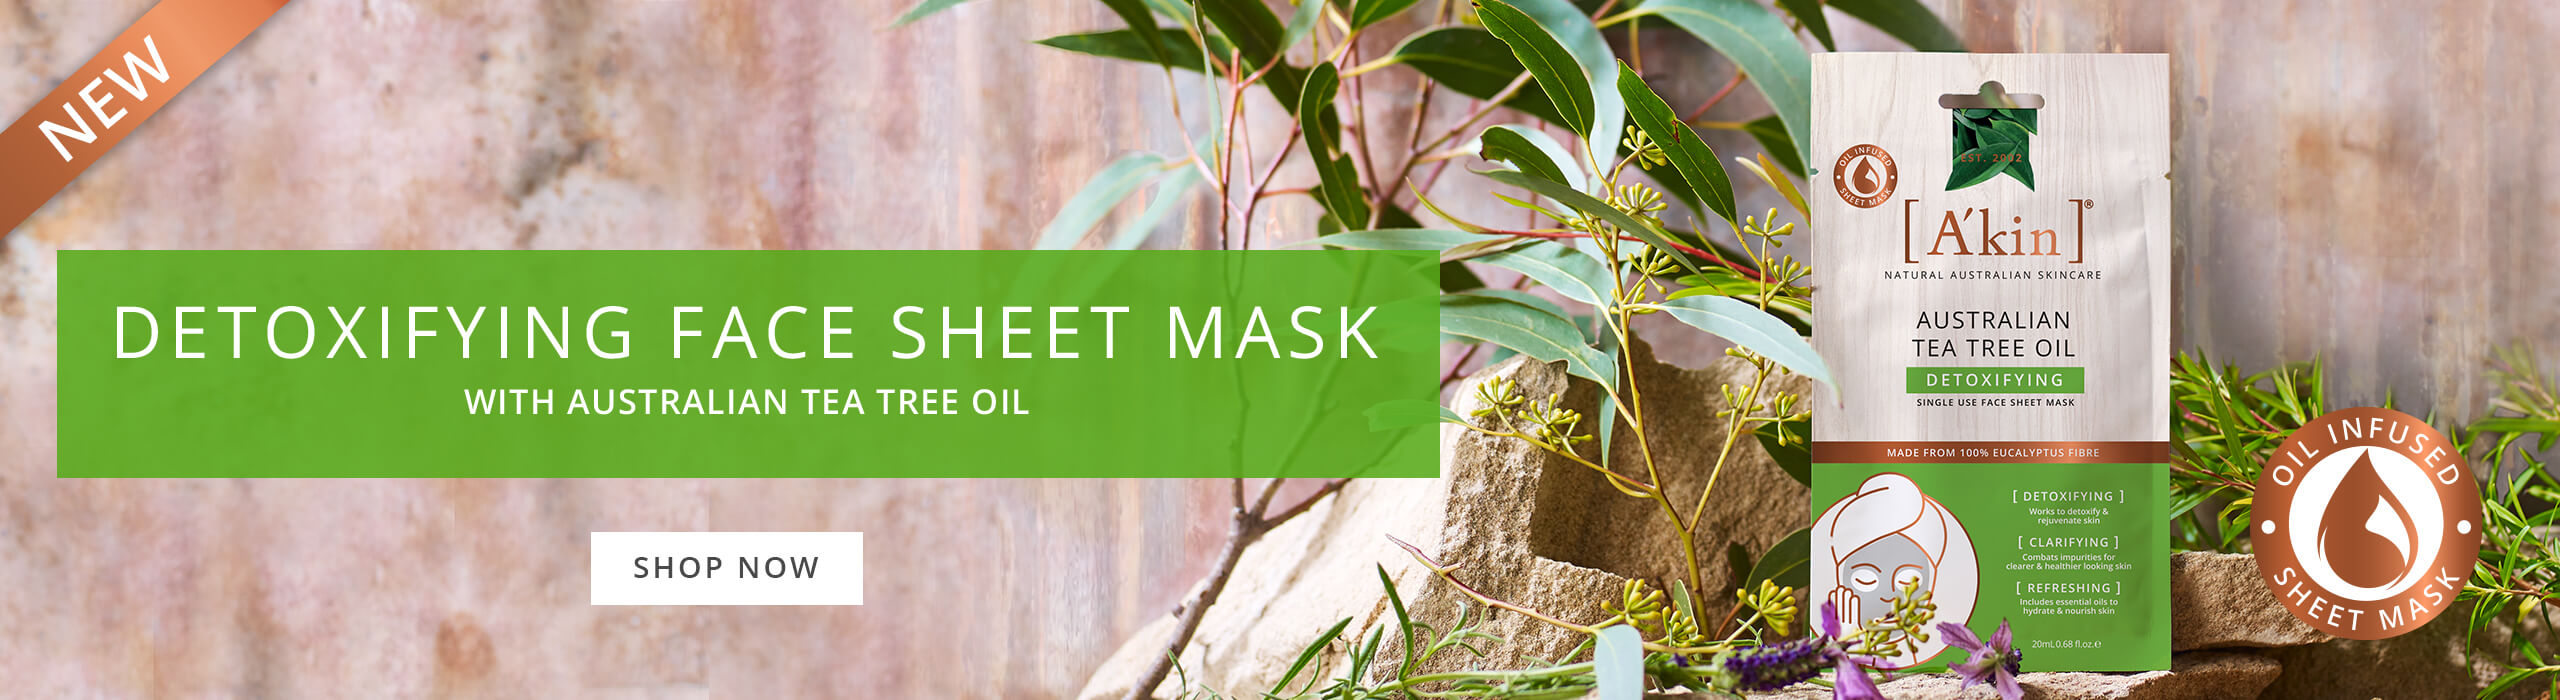 A'kin Australian Tea Tree Oil Detoxifying Face Sheet Mask